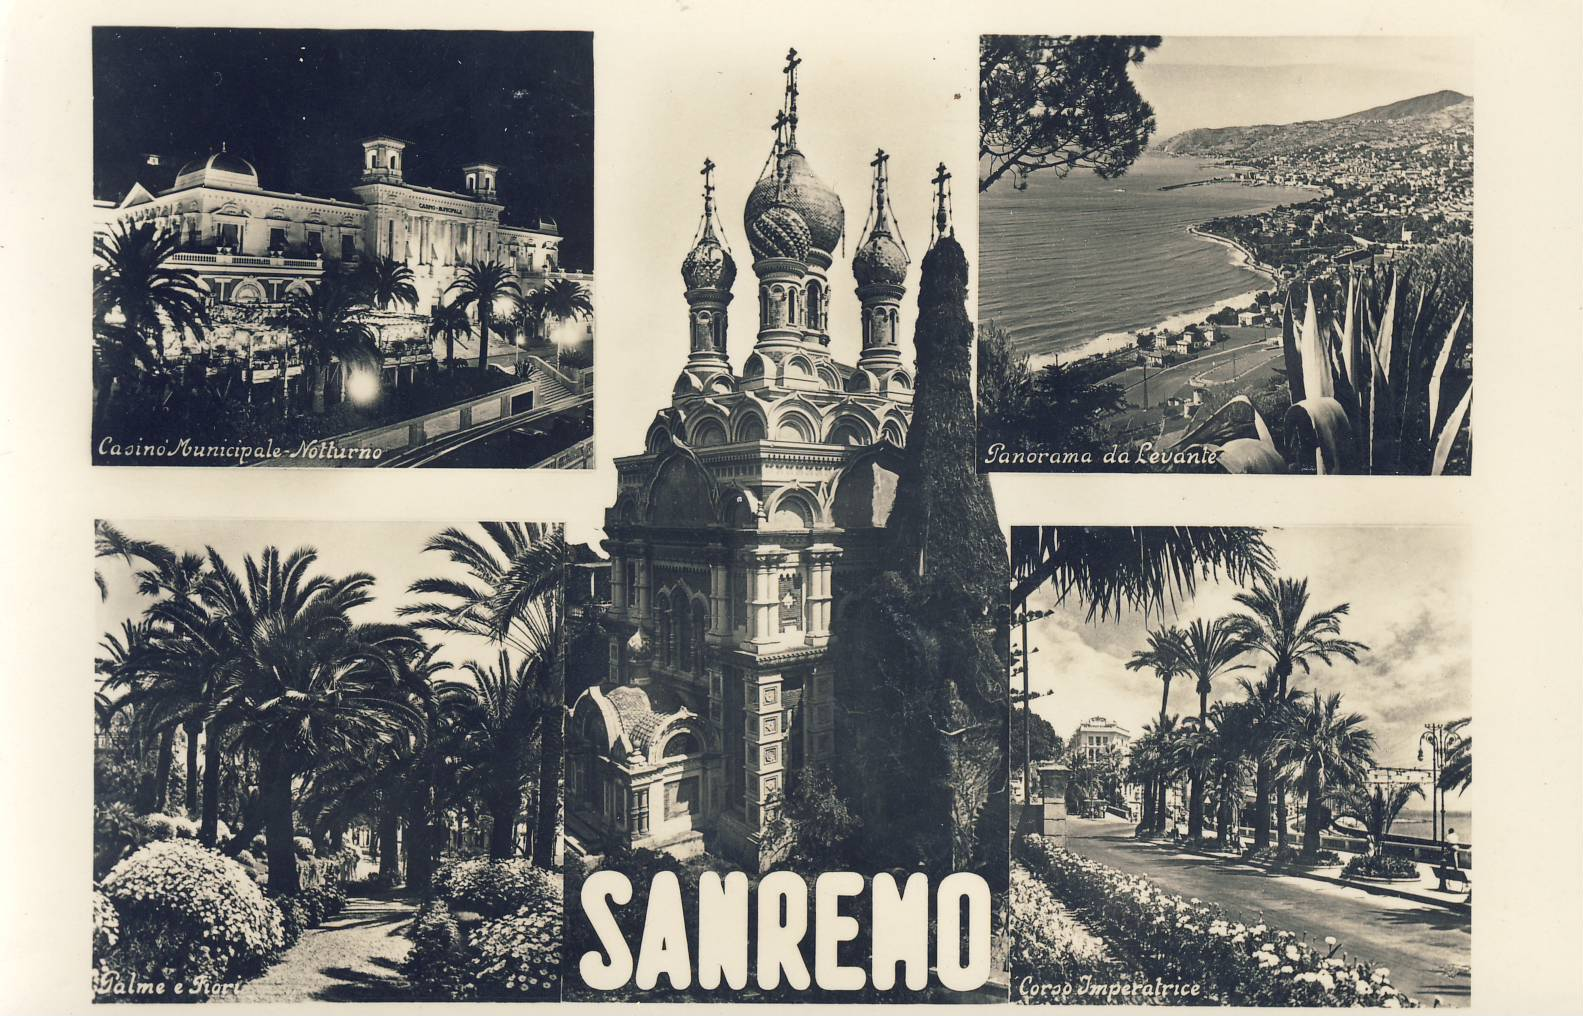 SAN REMO ITALY 1950s Old Postcard refP9 Pre-owned used condition with name address and message on reverse with Italian stamp.